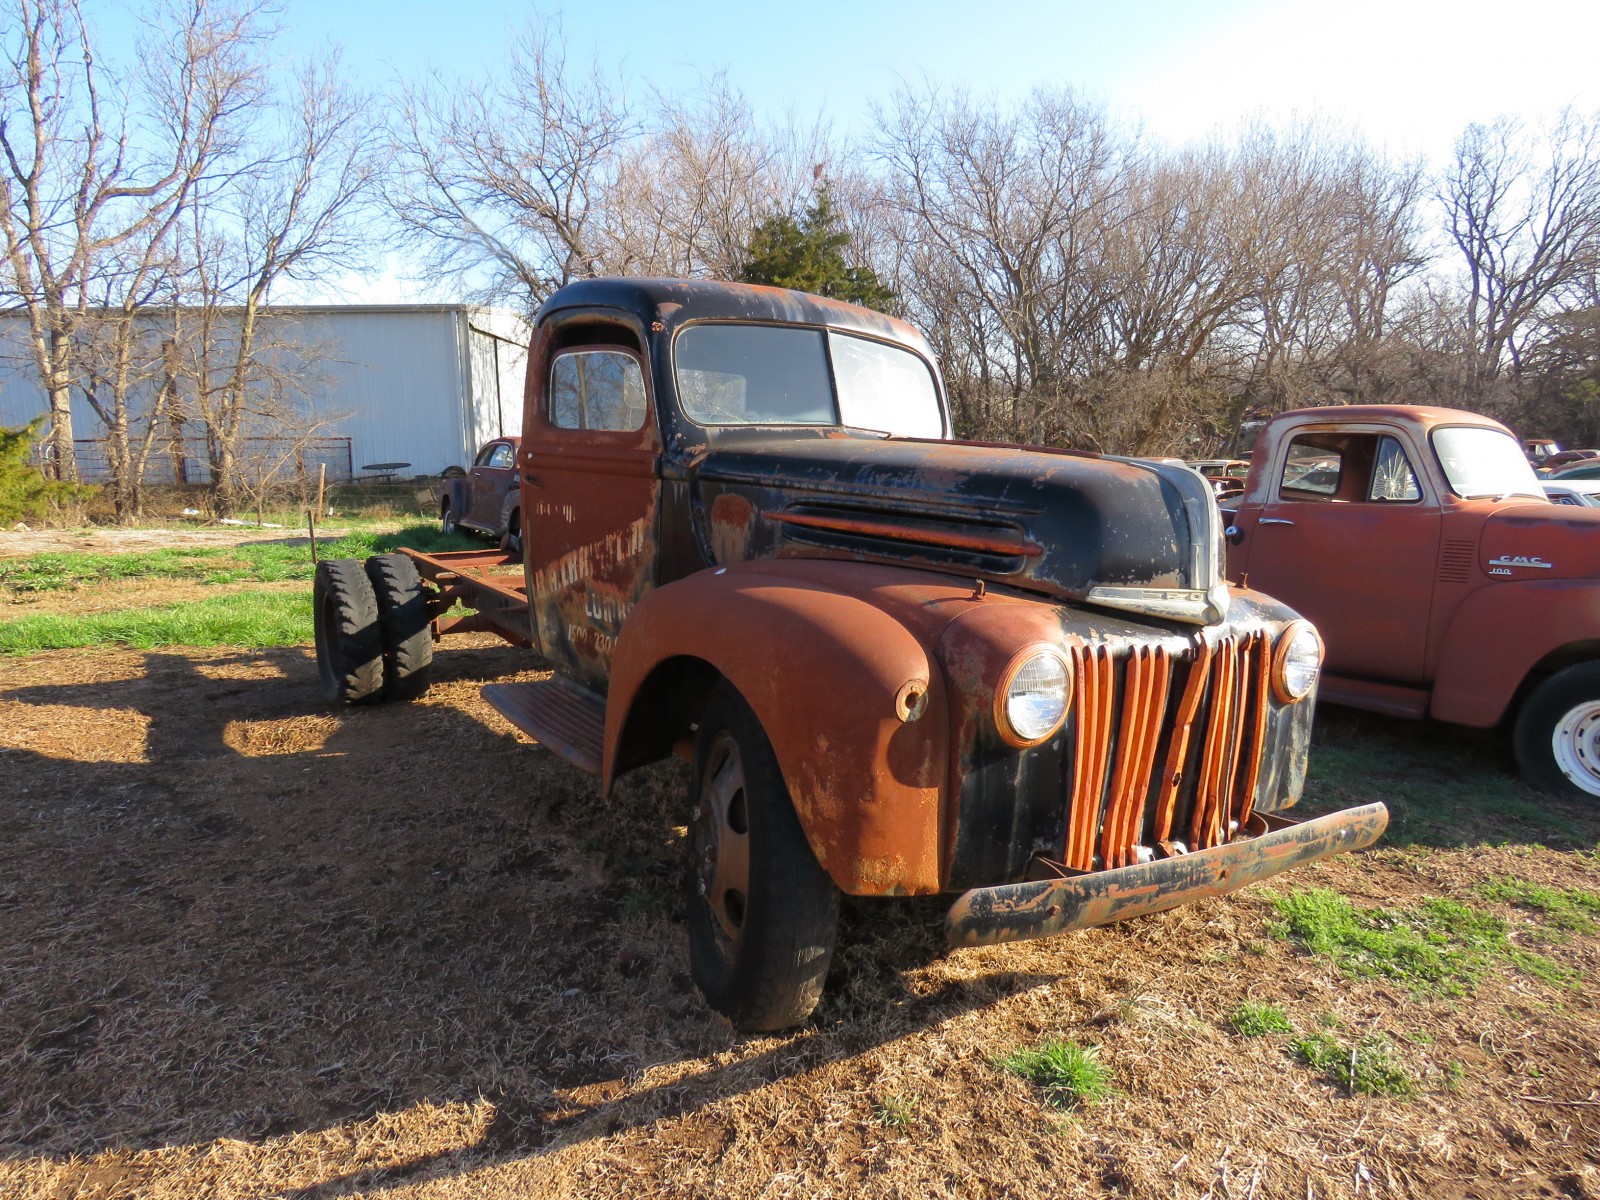 1946 Ford Truck - Image 2